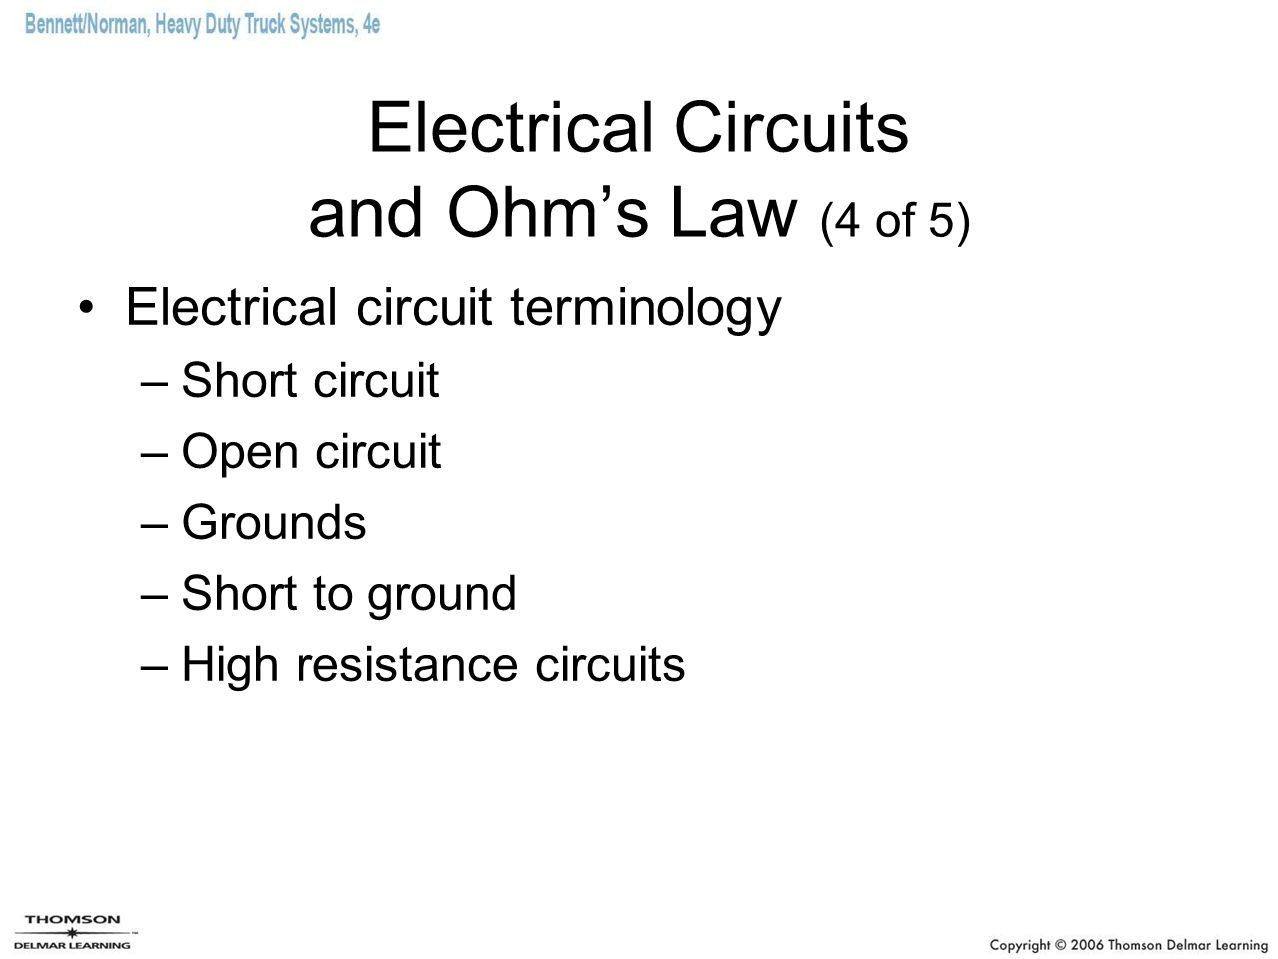 Electrical Circuits and Ohm's Law (4 of 5) Electrical circuit terminology –Short circuit –Open circuit –Grounds –Short to ground –High resistance circuits